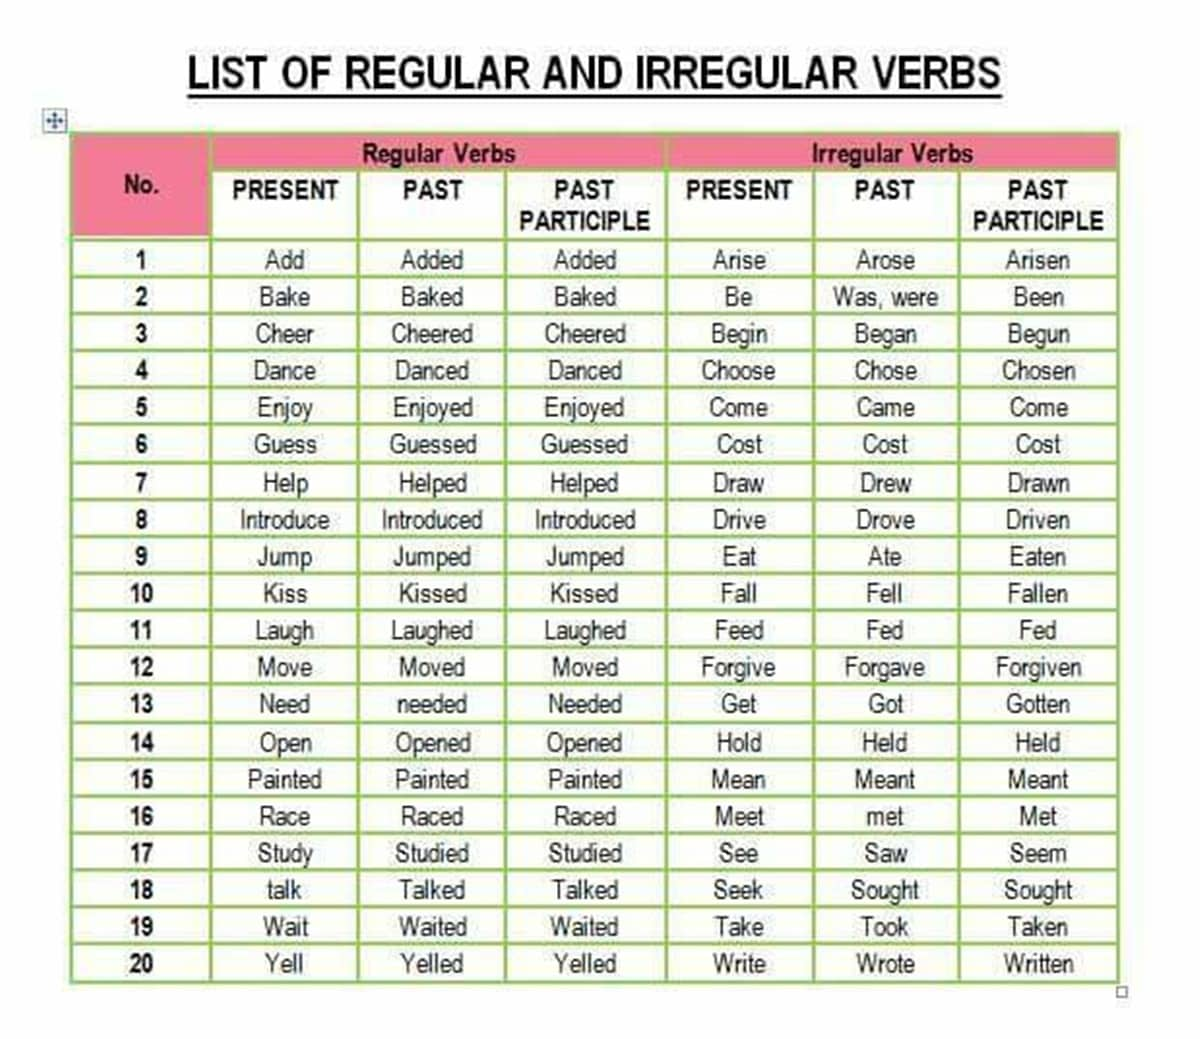 Verb Forms List Of Regular And Irregular Verbs In English